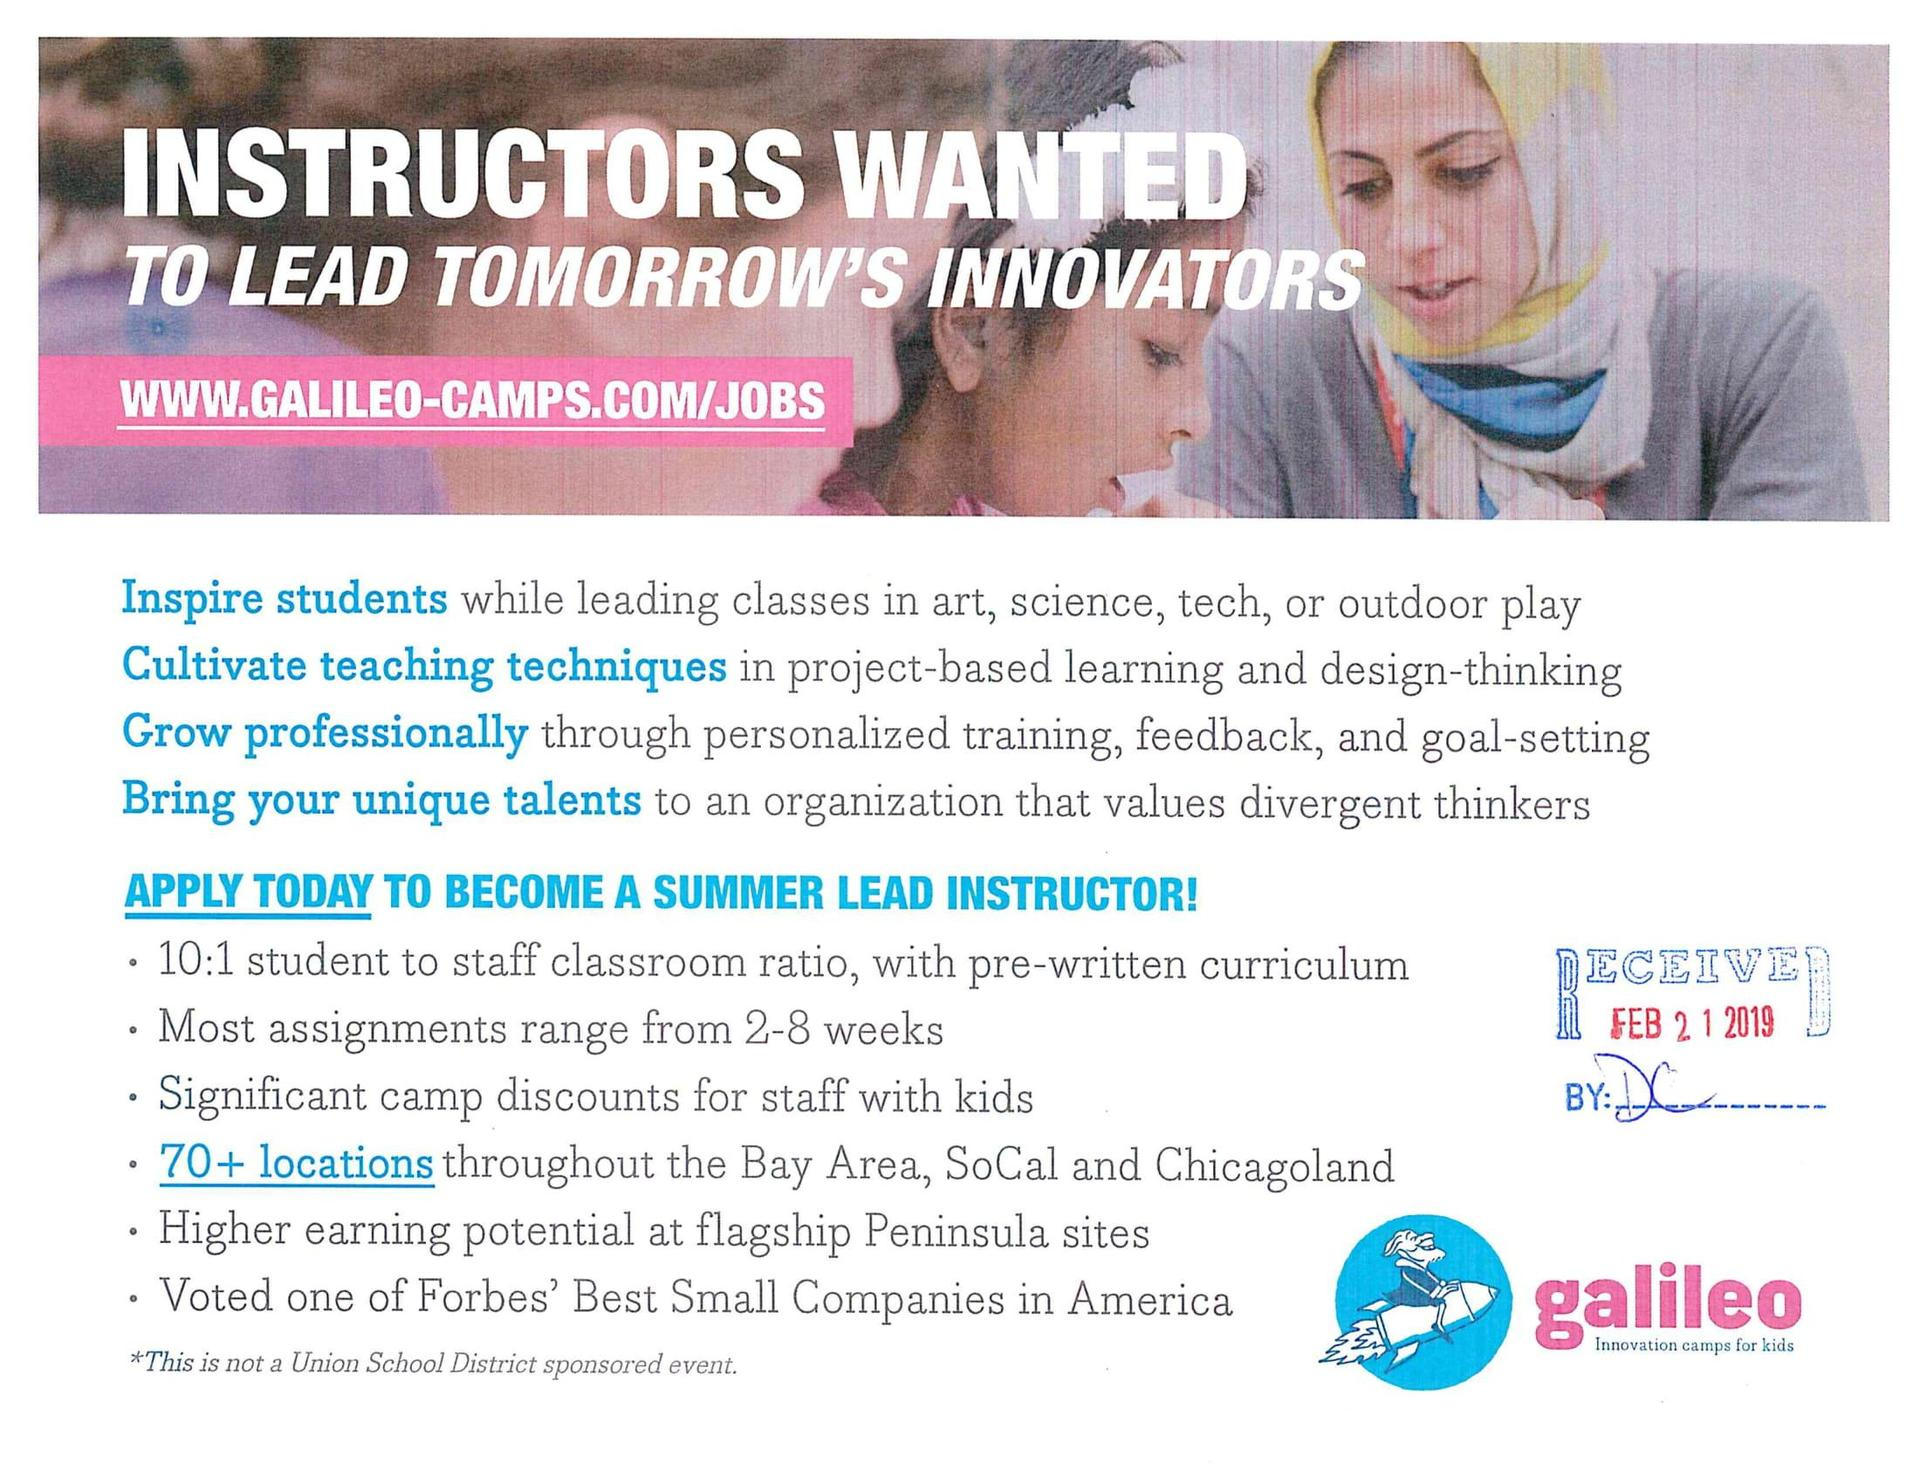 Galileo camp instructors wanted